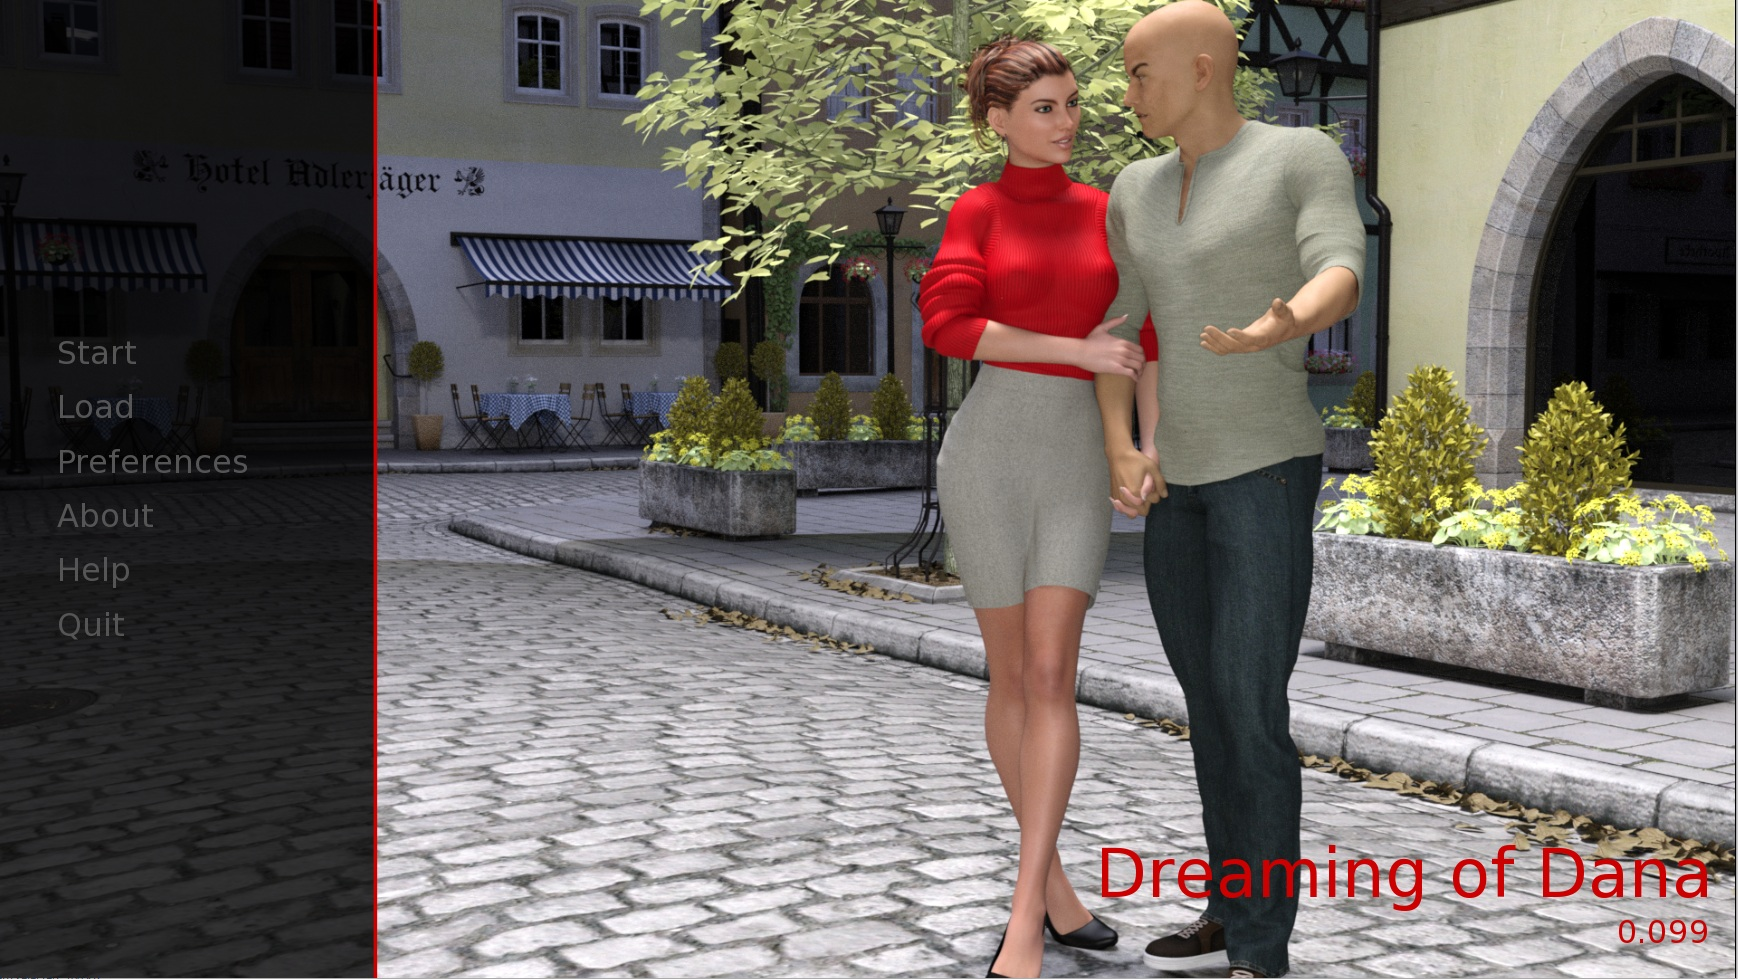 Dreaming of Dana - Updated - Version 0.099 - Pc and Mac